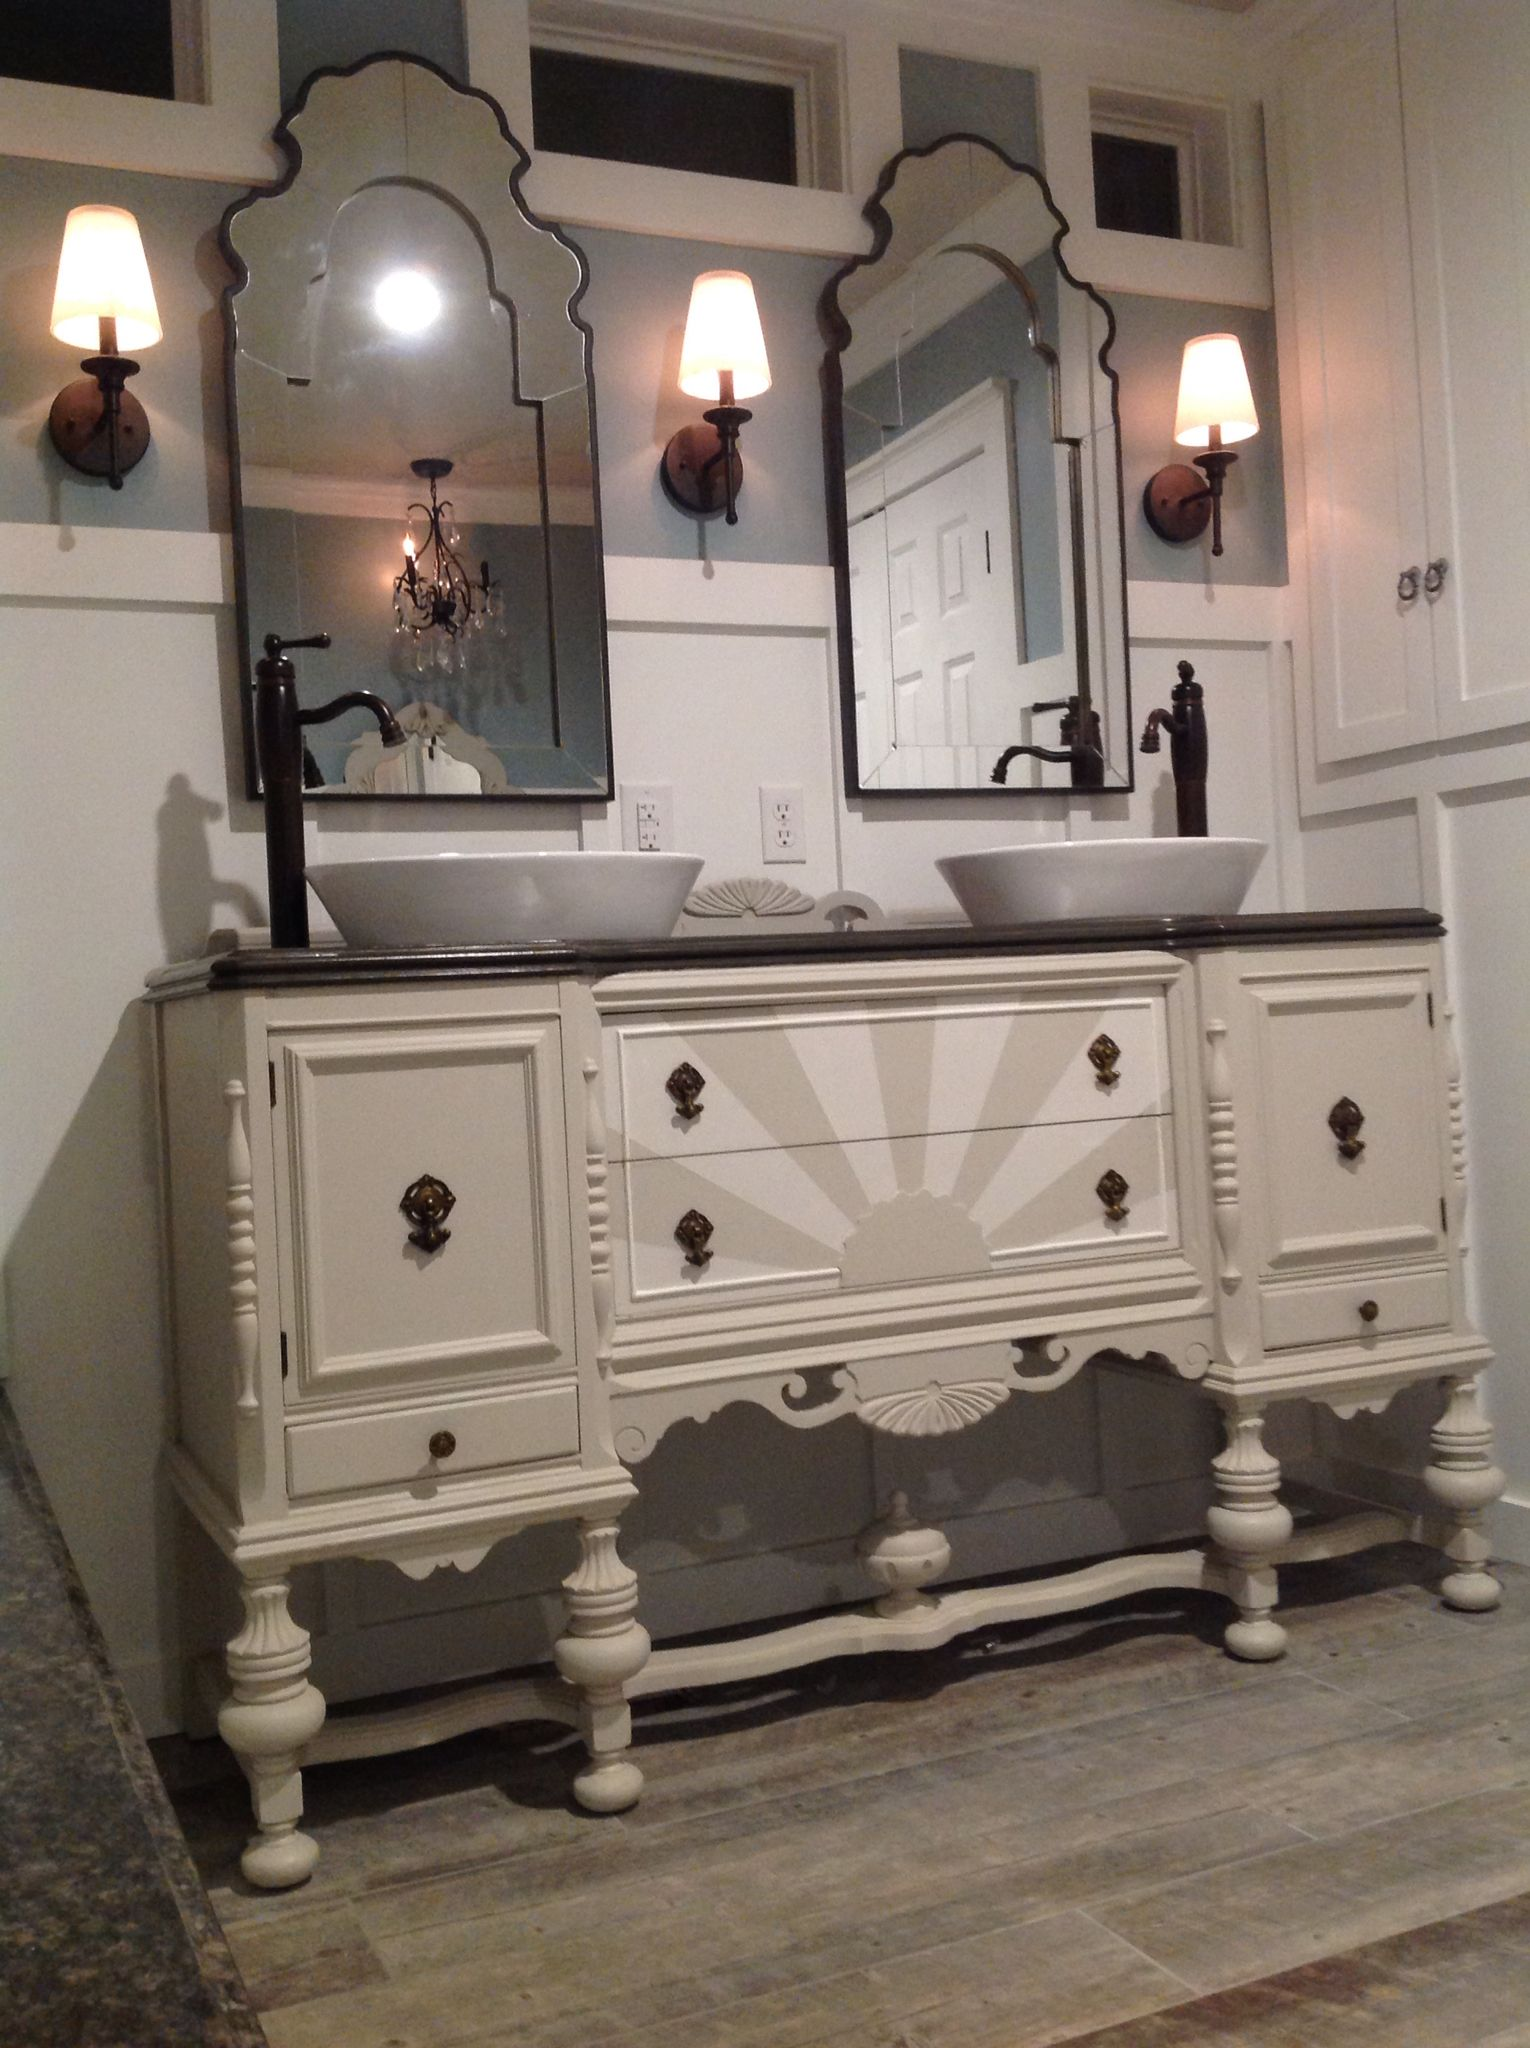 Our antique sideboard buffet repurposed into a bathroom vanity by